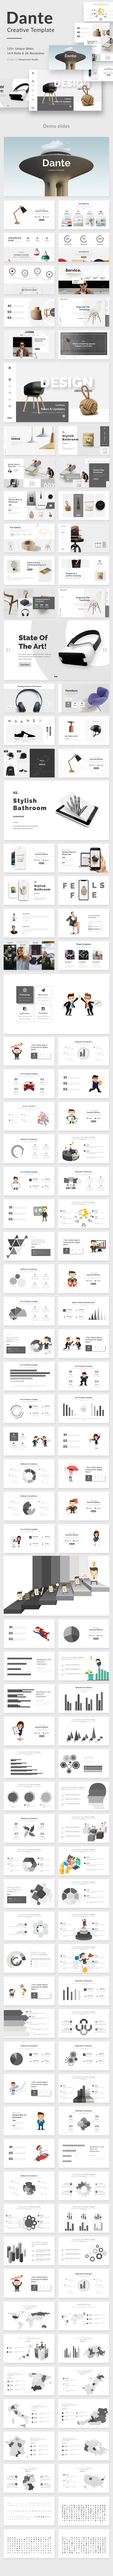 Dante Creative Powerpoint Template - Creative PowerPoint Templates